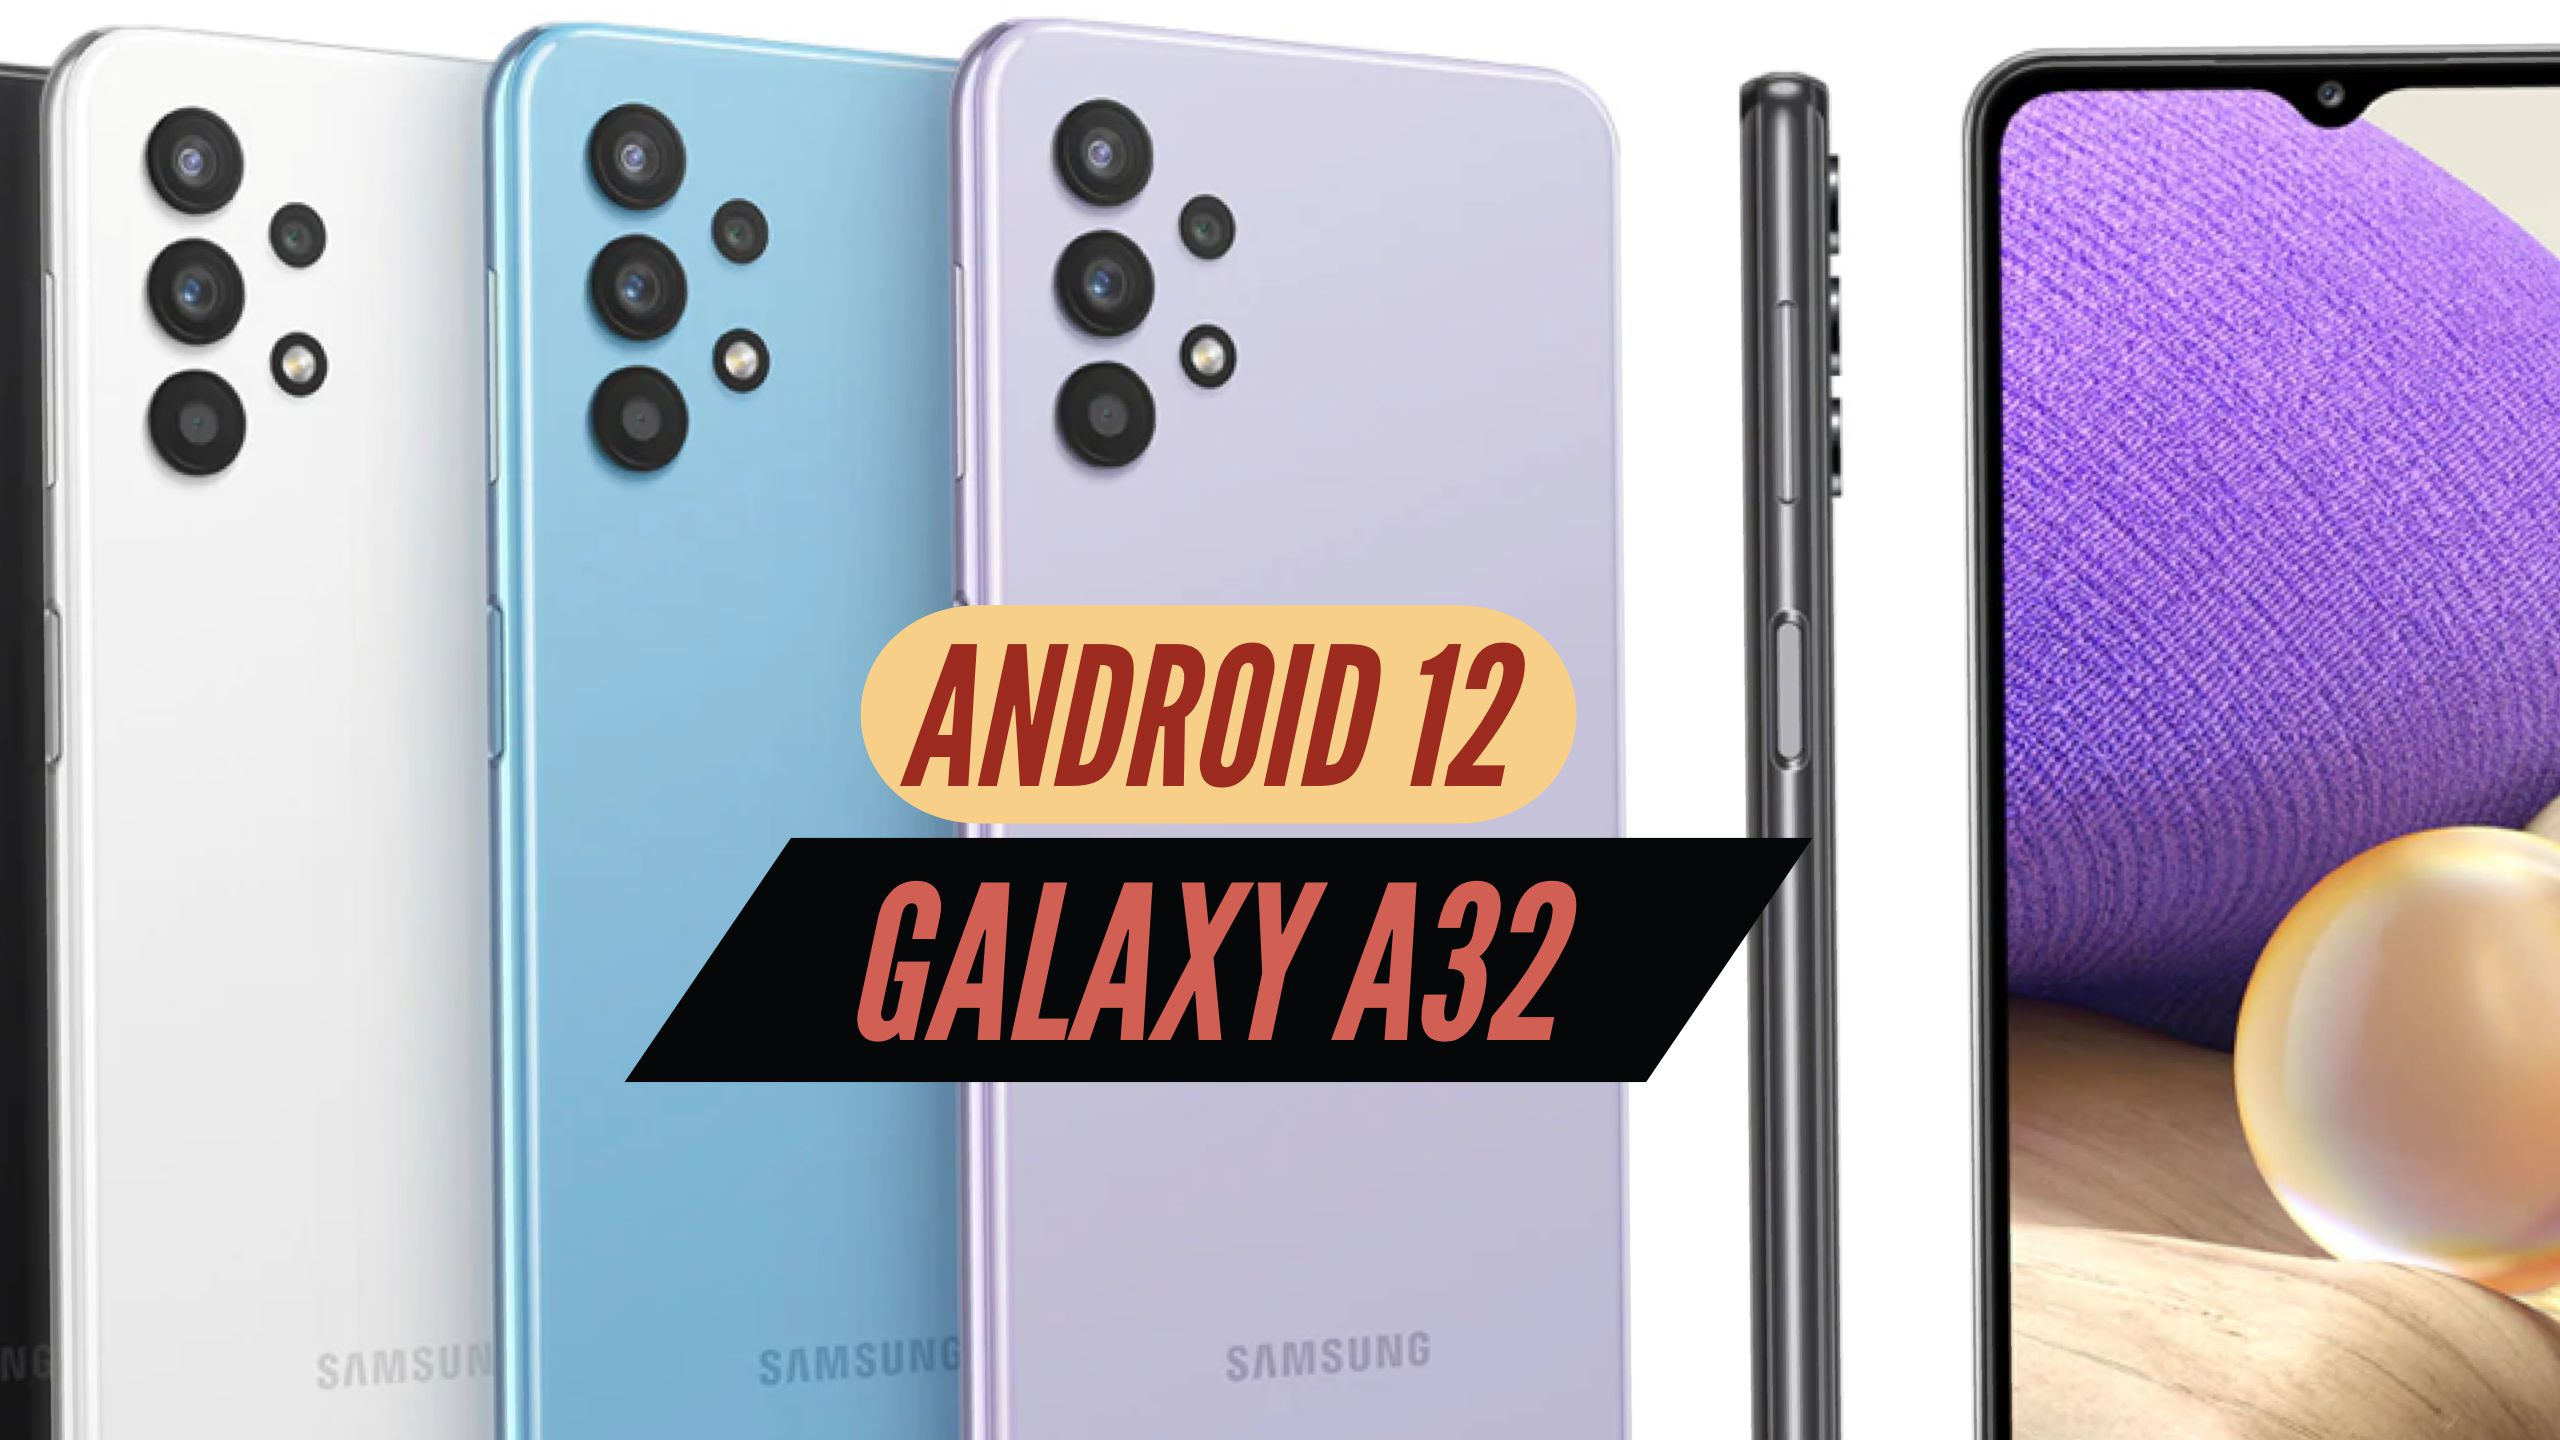 Galaxy A32 Android 12